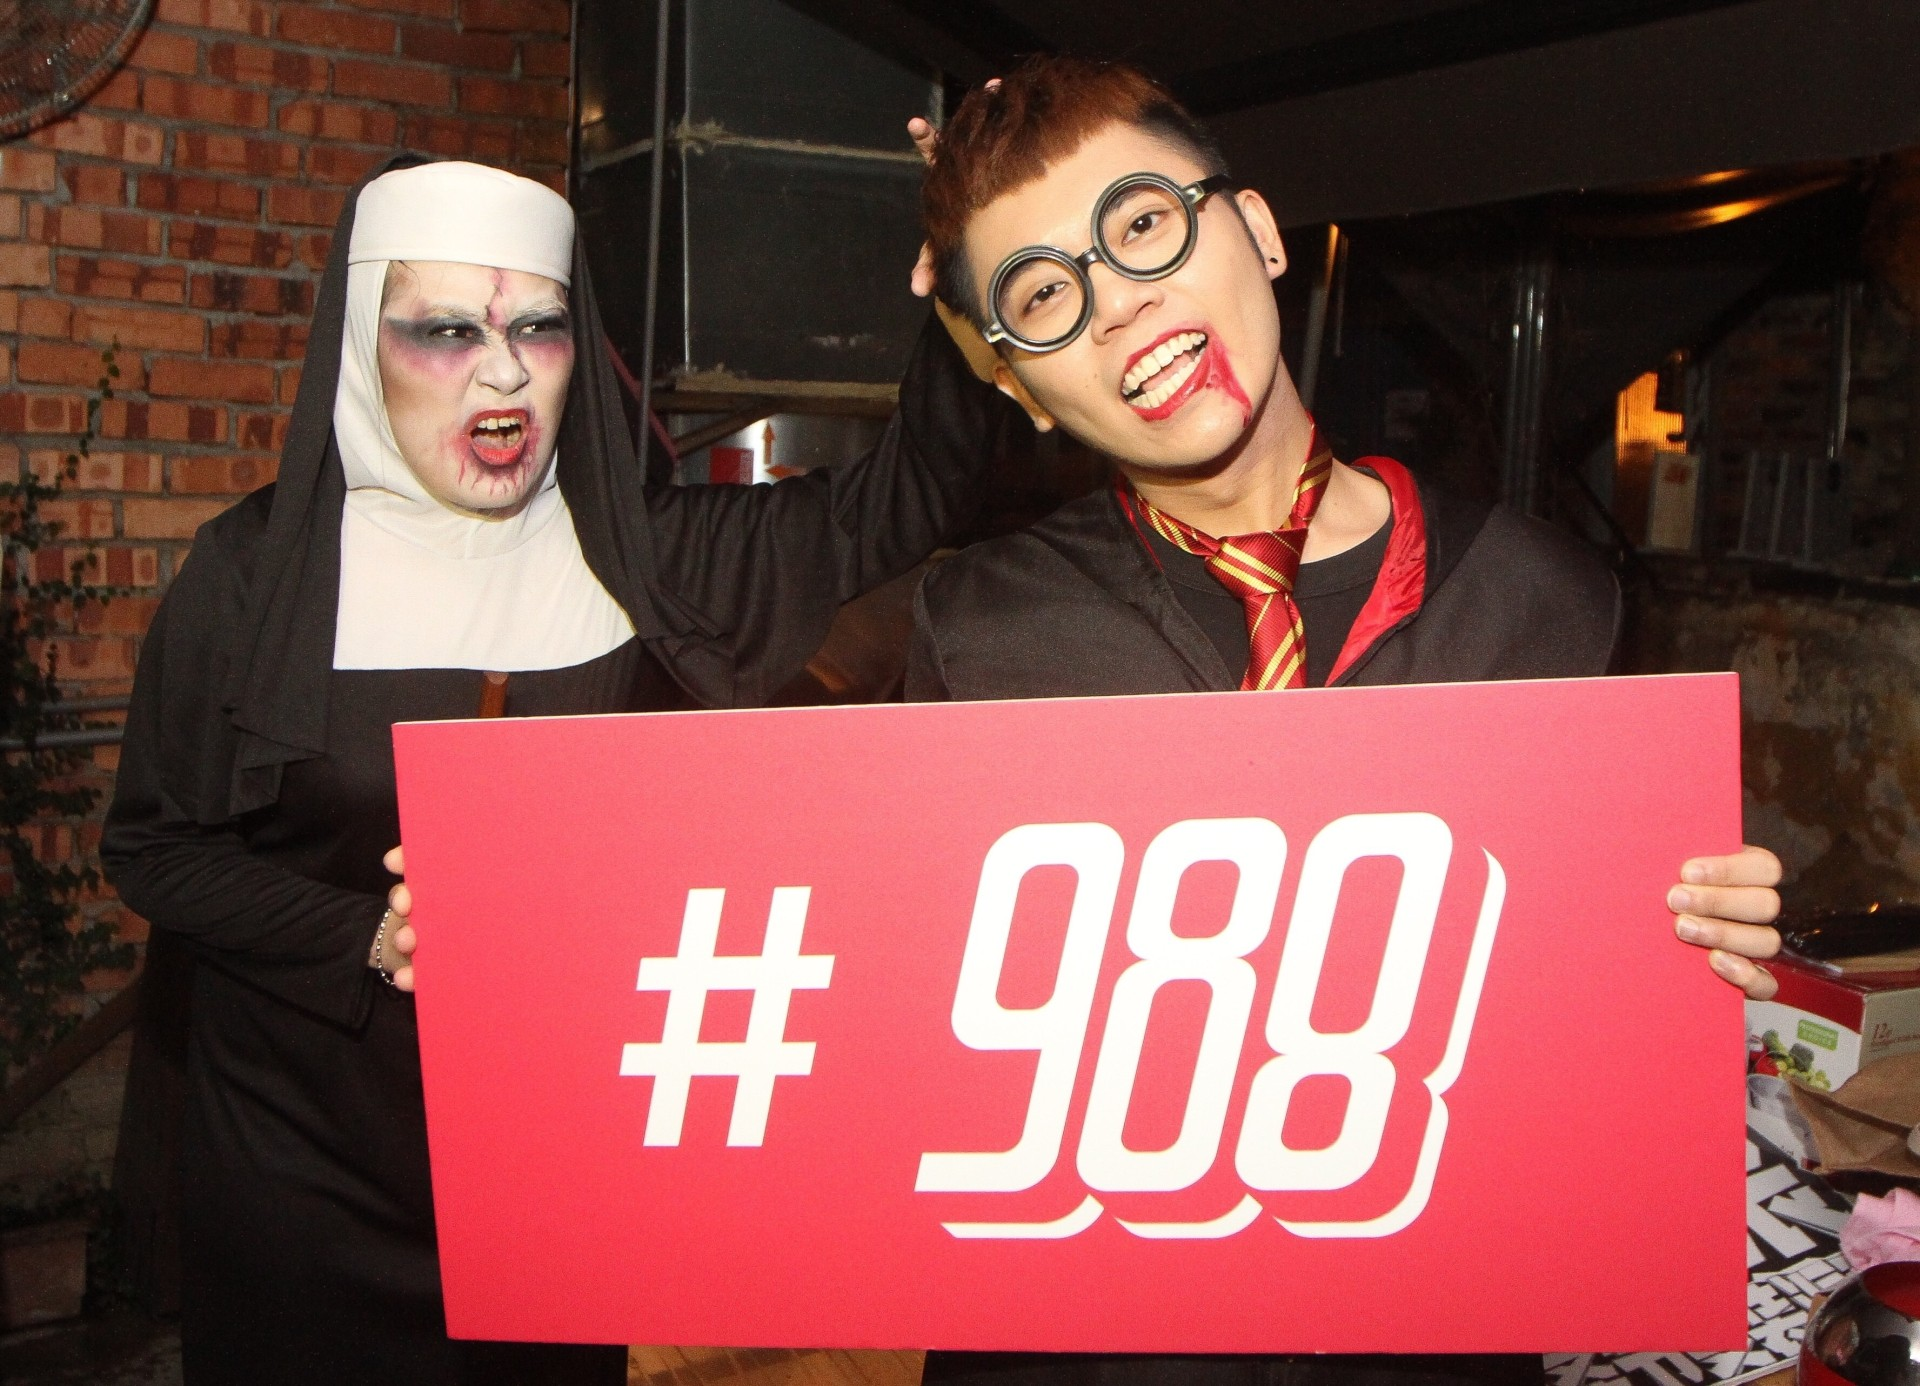 Chew (right) and 988 listener Tan who won the grand prize during the best dressed session.